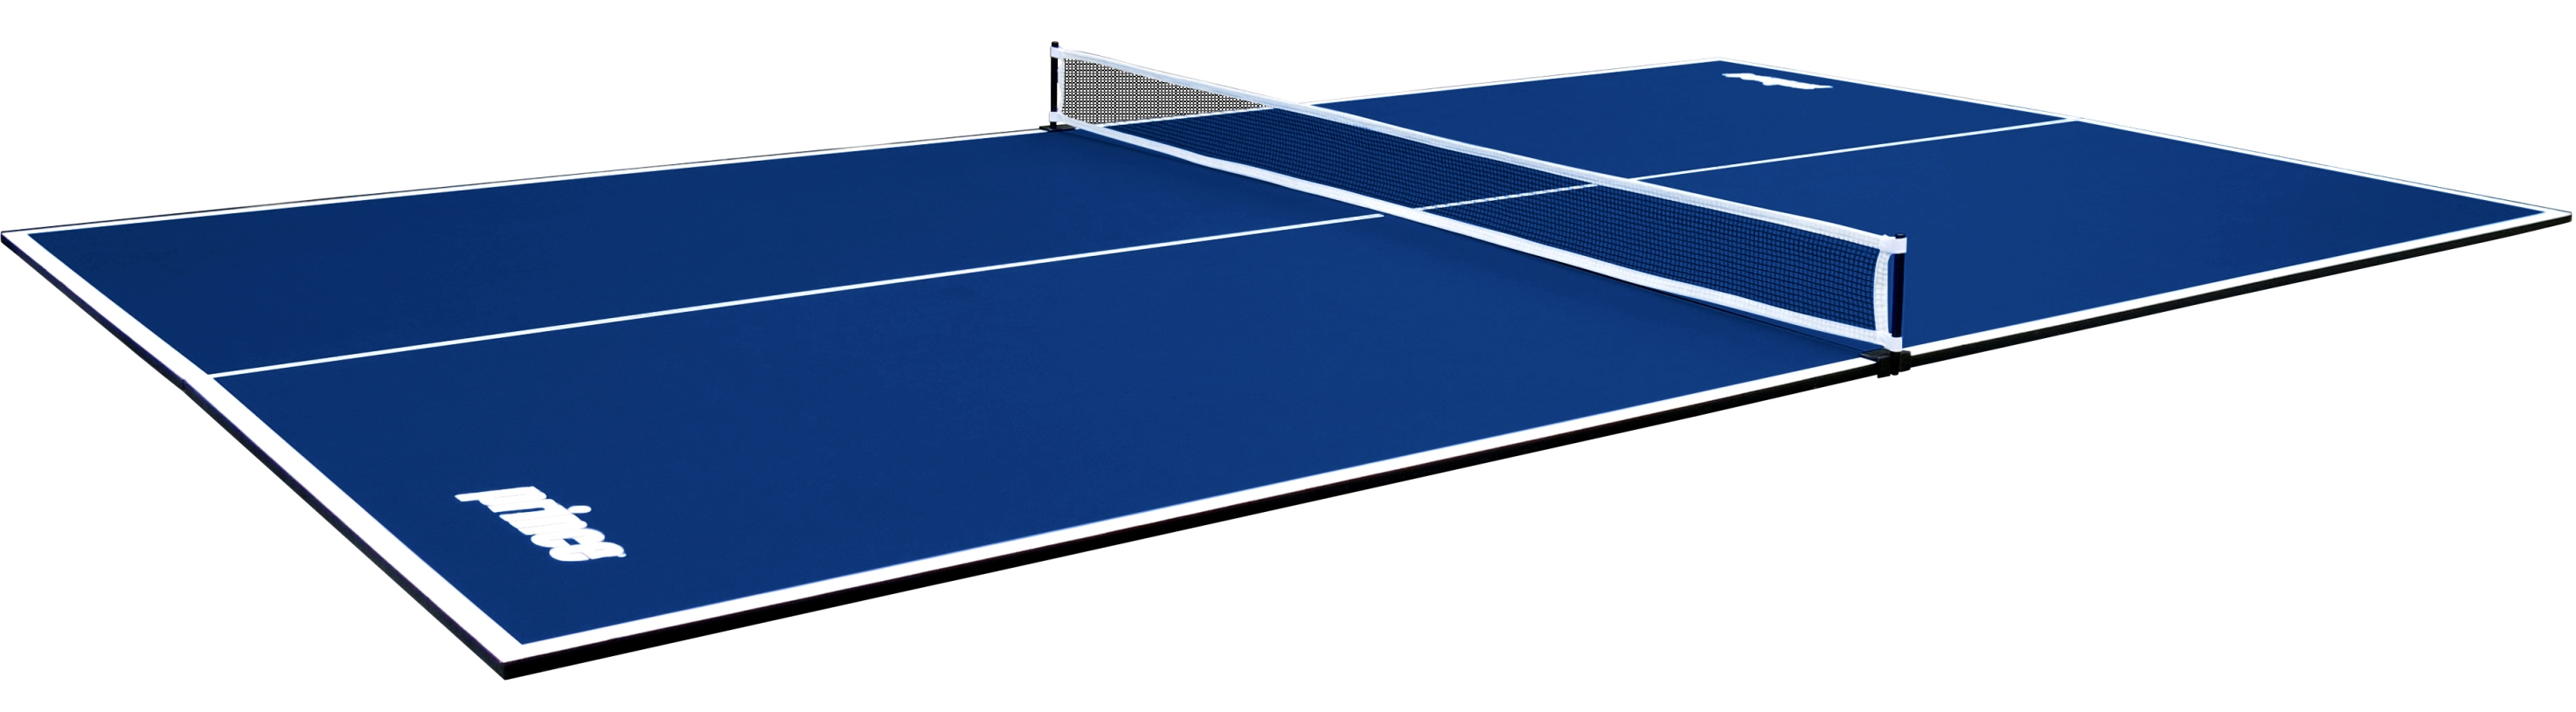 Prince Conversion Table Tennis Top